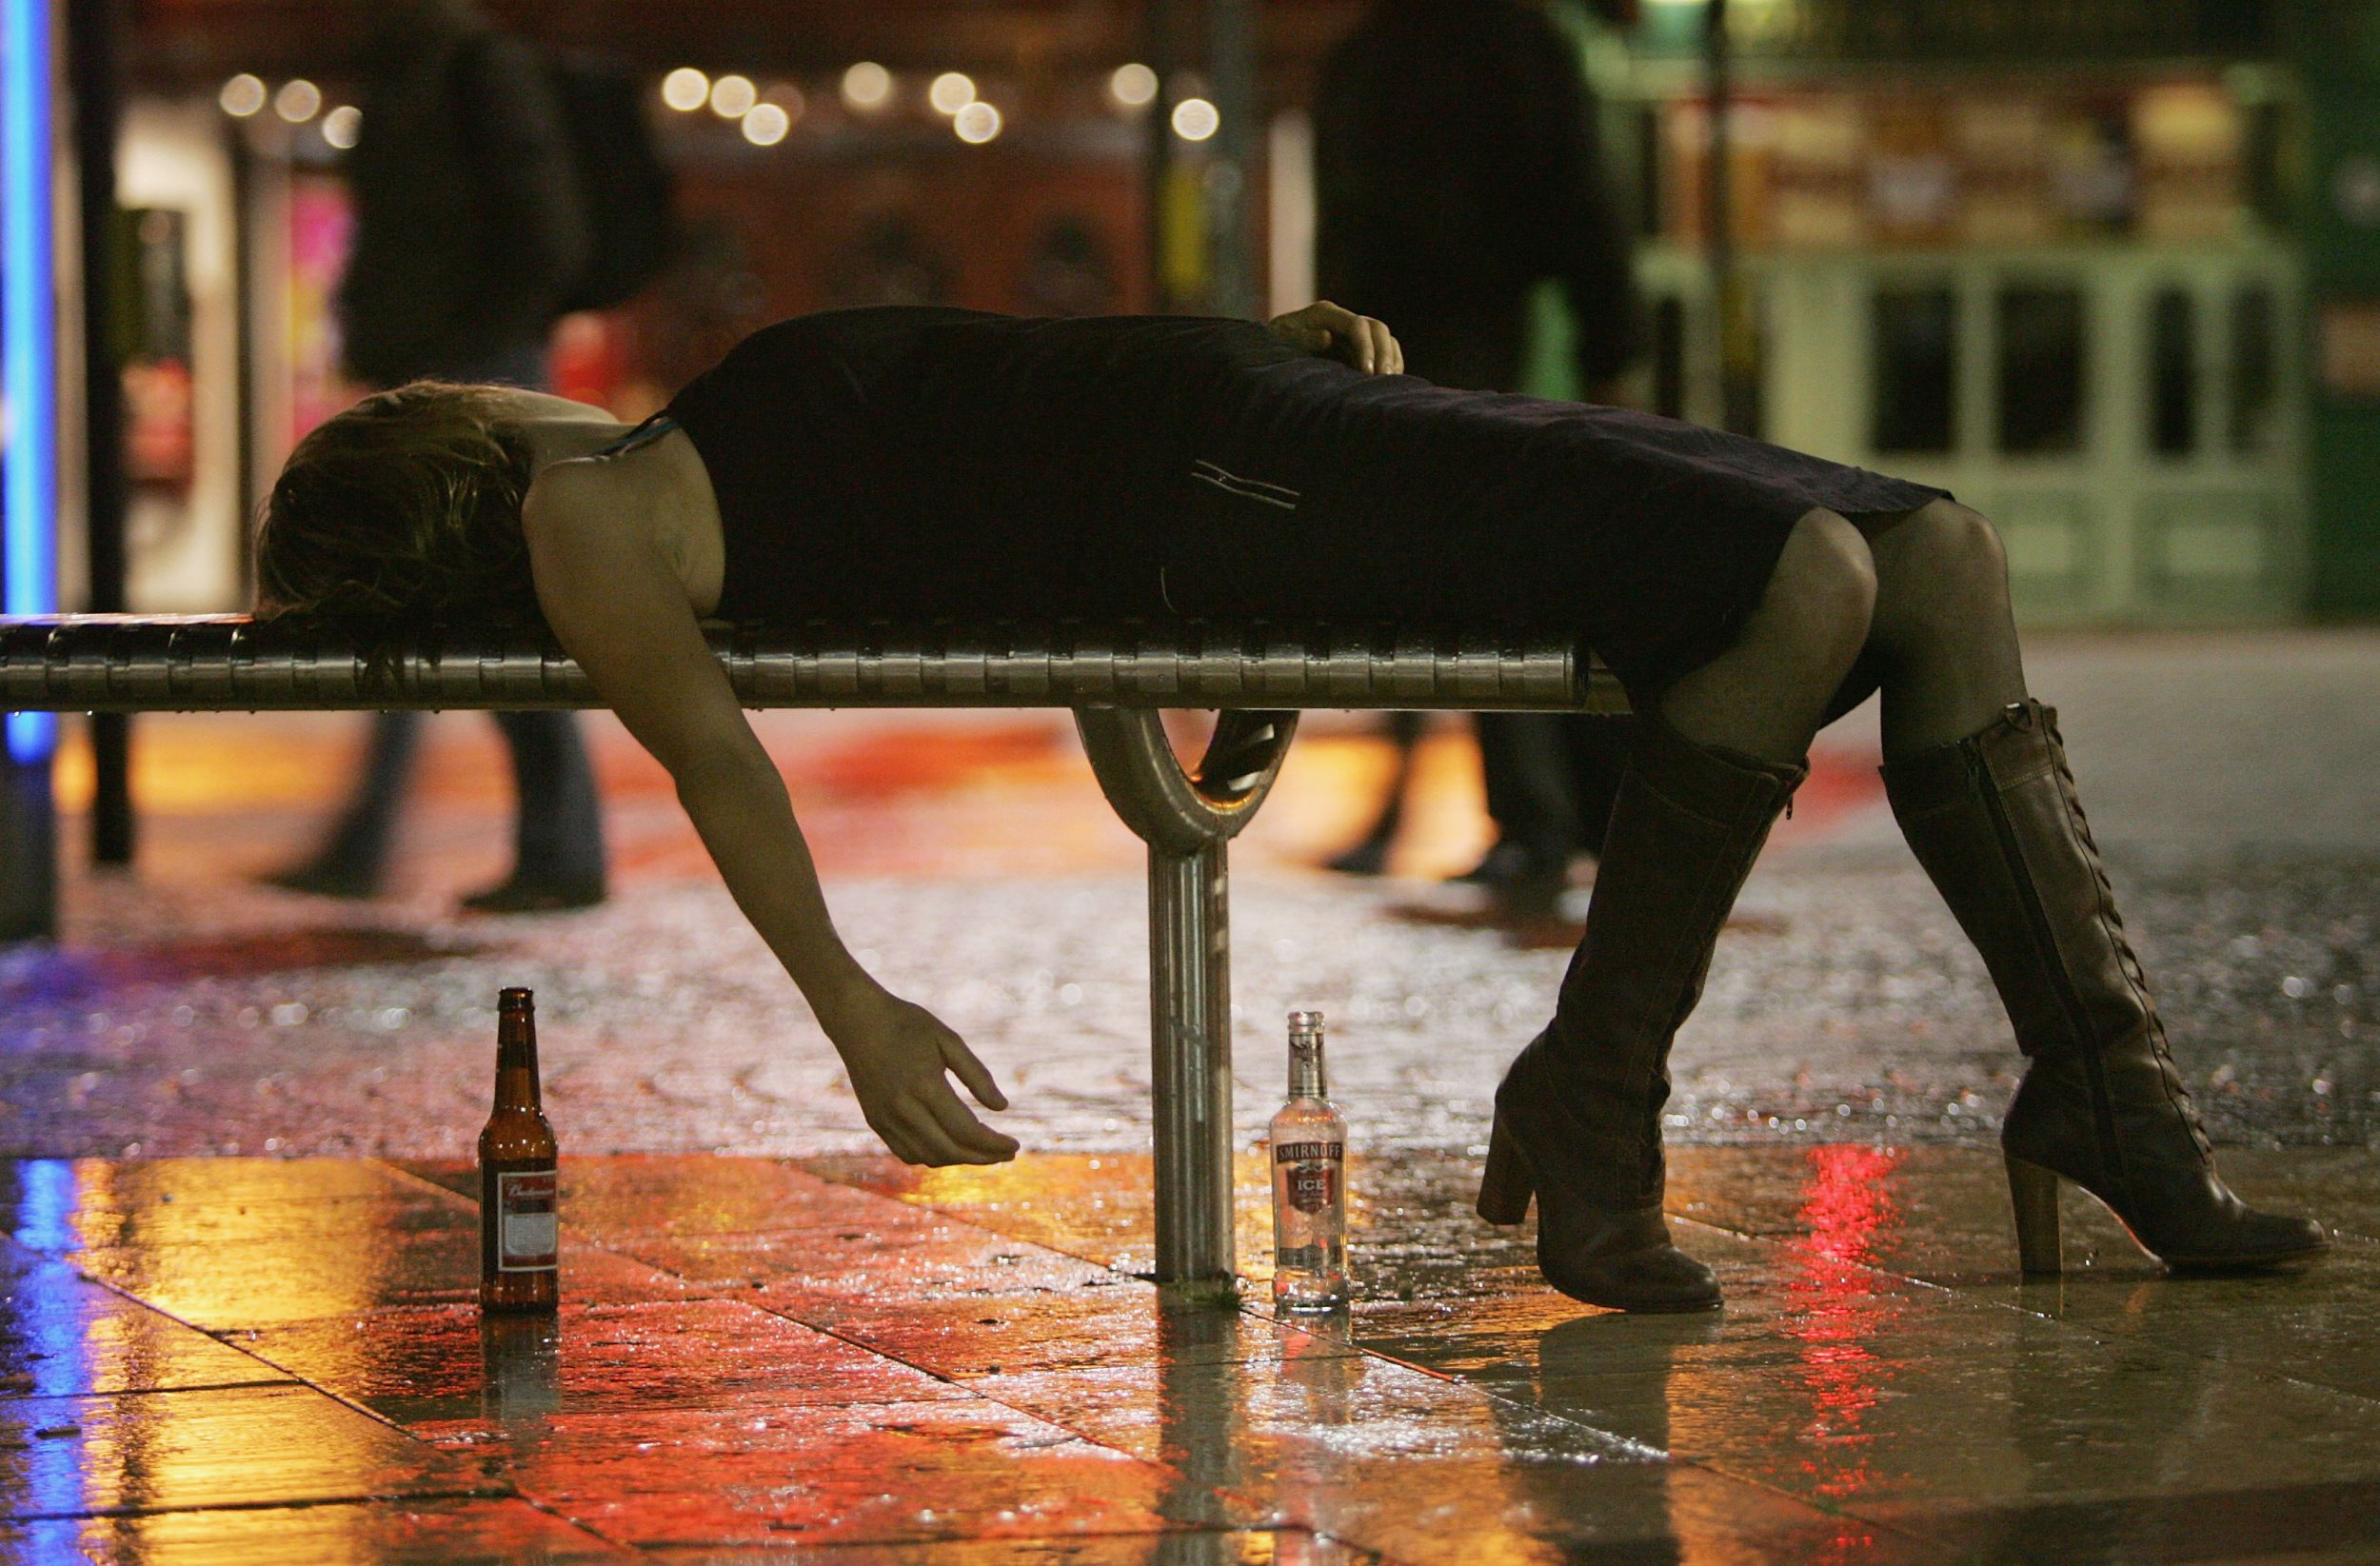 BRISTOL, ENGLAND - OCTOBER 15: A woman lies on a bench after leaving a bar in Bristol City Centre on October 15, 2005 in Bristol, England. Pubs and clubs are preparing for the new Licensing laws due to come into force on November 24 2005, which will allow pubs and clubs longer and more flexible opening hours. Opponents of the law believe this will lead to more binge-drinking with increased alcohol related crime, violence and disorder while health experts fear an increase in alcohol related illnesses and alcoholism. (Photo by Matt Cardy/Getty Images)